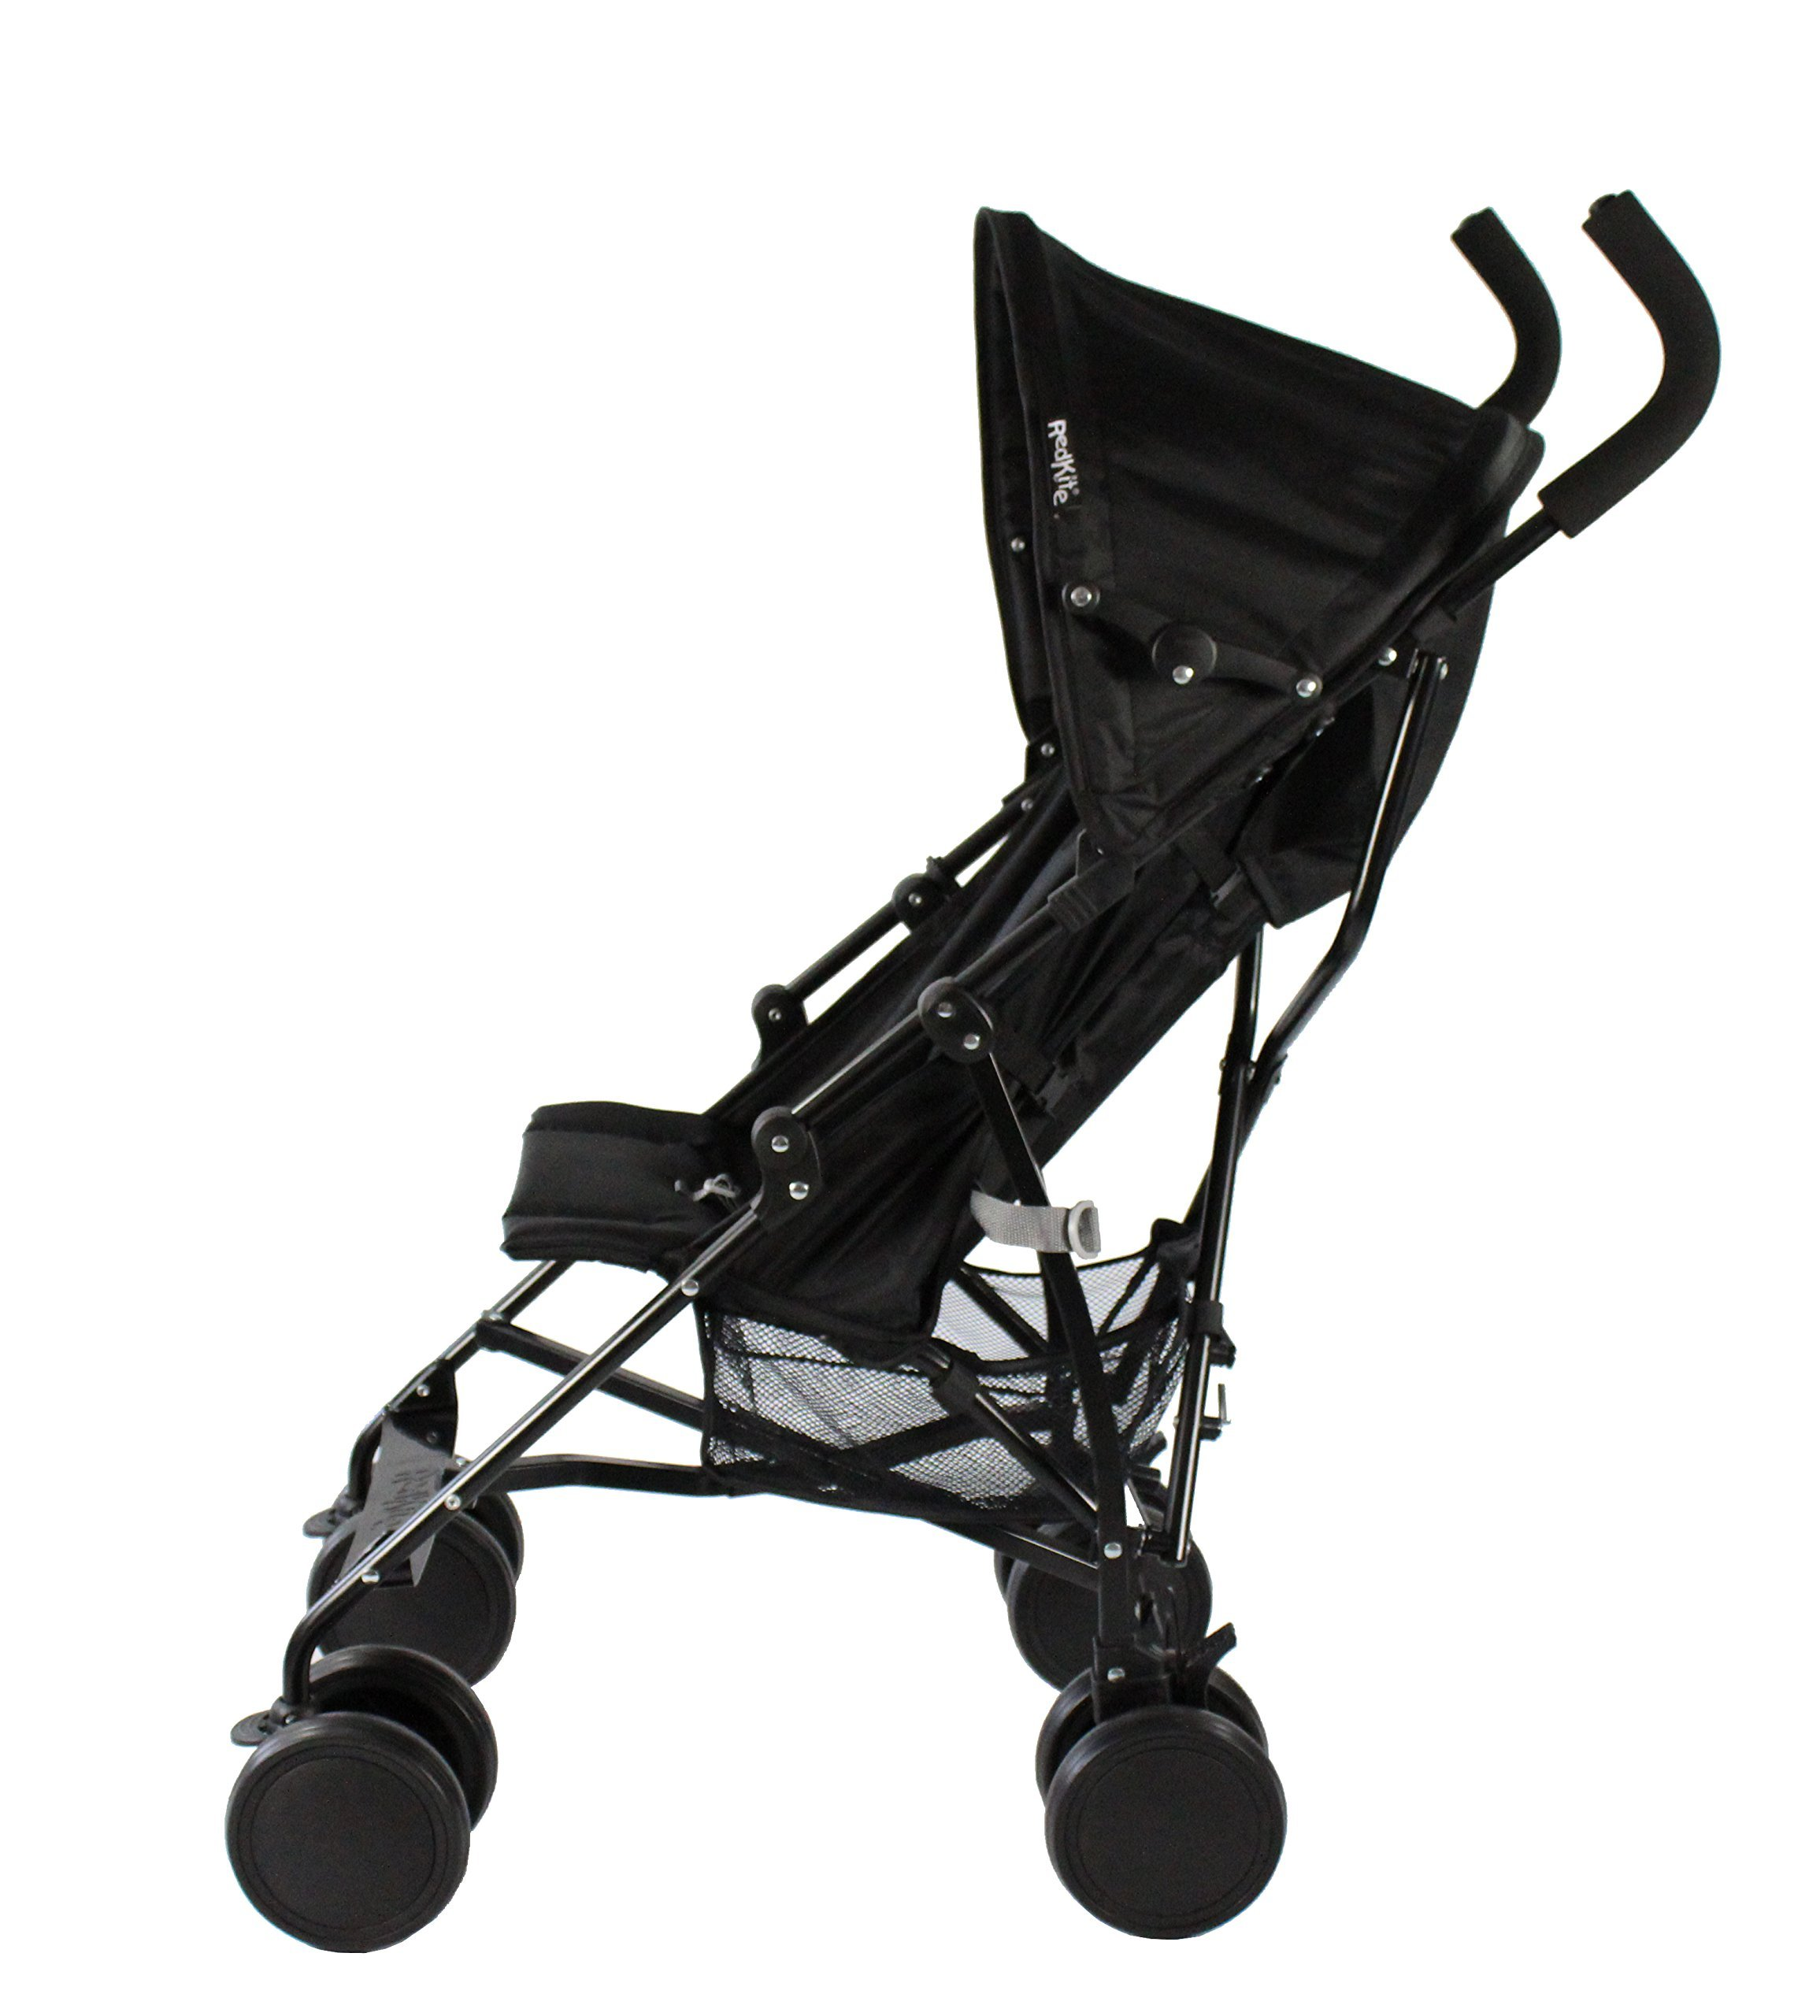 Red Kite Baby Push Me 2U (Midnight) Red Kite Baby Suitable from 6 months Includes shopping basket and raincover Lockable front swivel wheels. Detachable hood 5